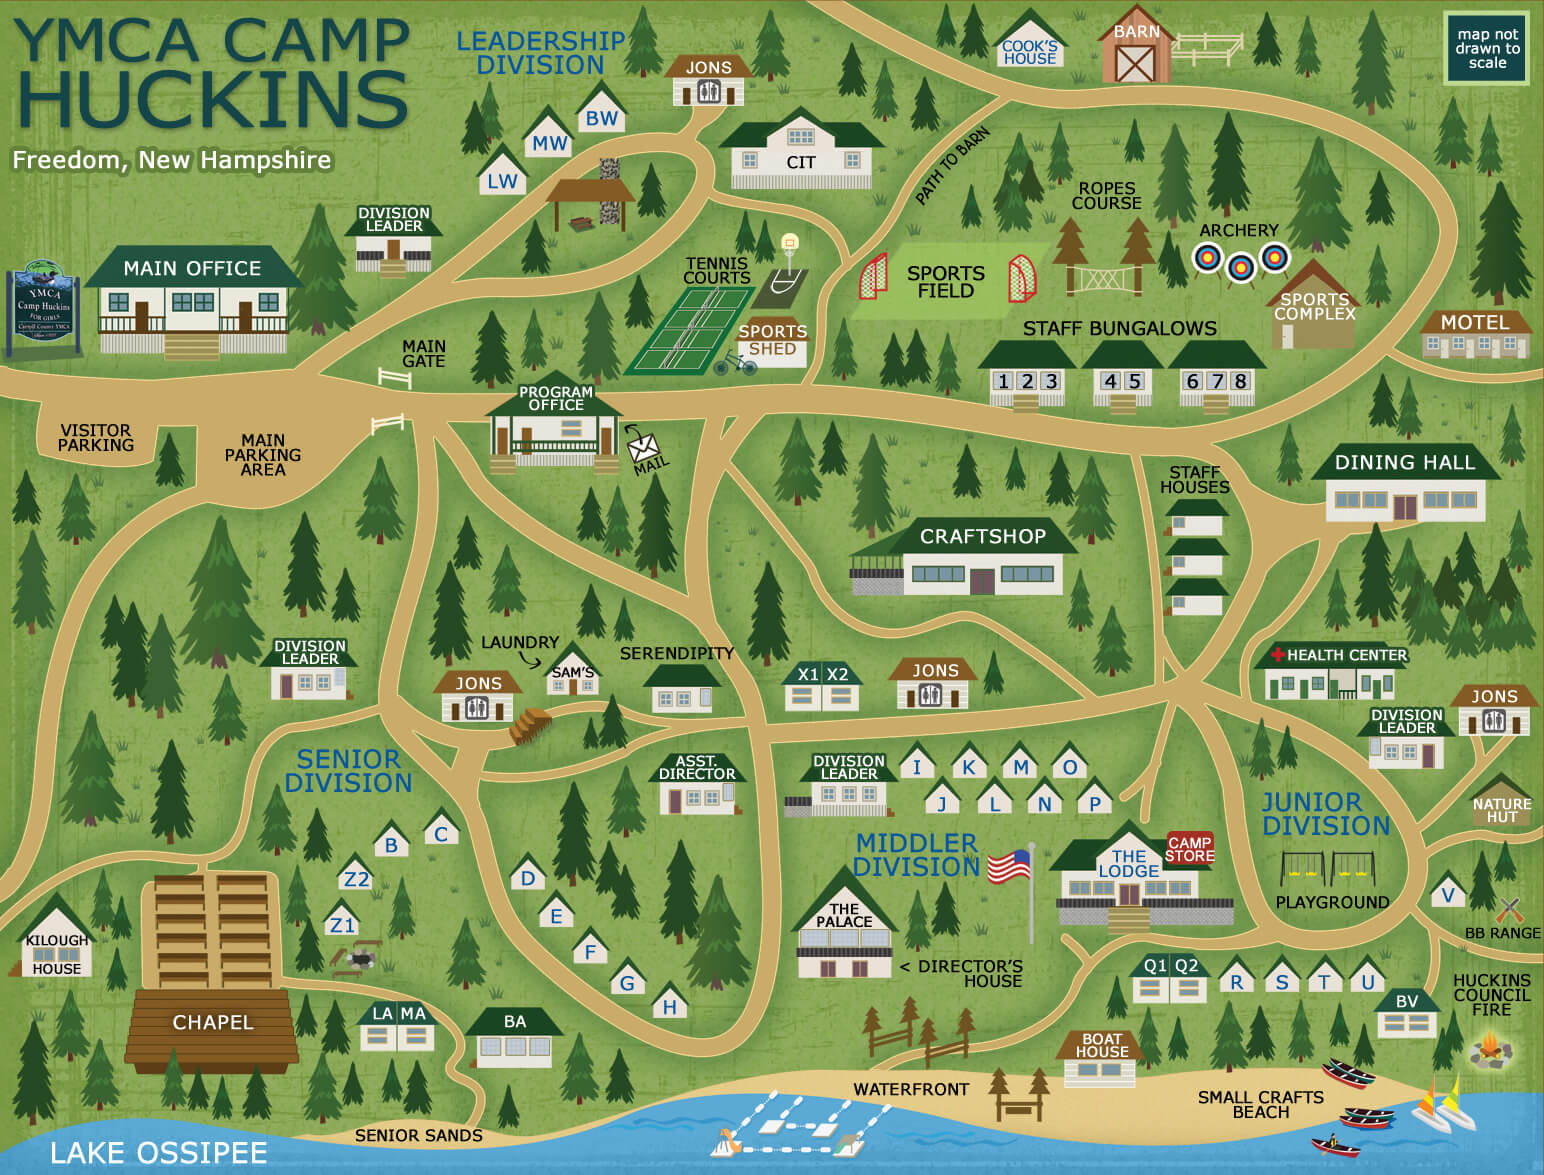 Interactive Map | YMCA Camp Huckins on presentation maps, world of warships maps, games maps, schiphol airport parking maps, virtual maps, united kingdom maps, vermont town boundary maps, 2d maps, minnesota dnr lake maps, educational maps, asia maps, google maps, motion maps, topographic maps, all maps, fun maps, dot right of way maps, classic maps,